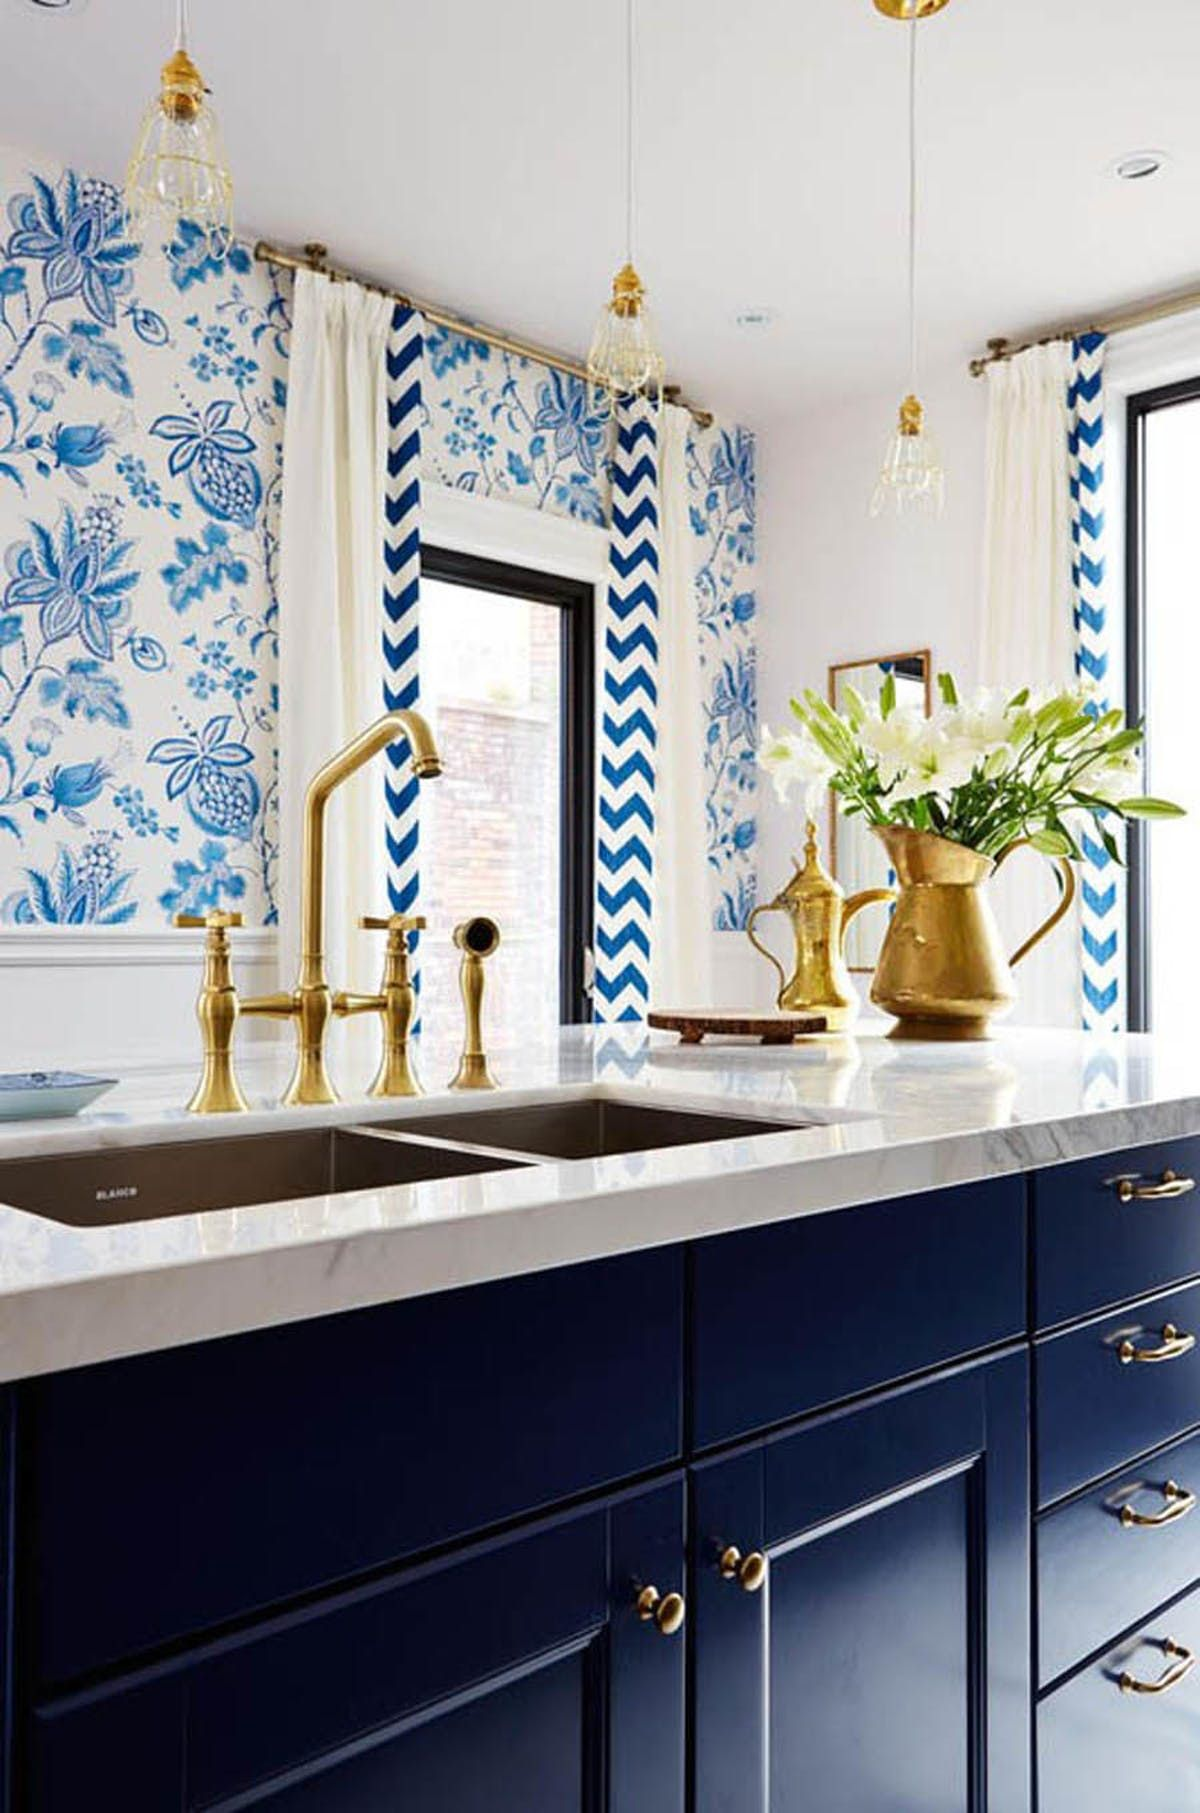 Colorful Kitchen Cabinets Bright Blue Cabinets Blue And White Floral Print Wallpaper Gold Penda Blue White Kitchens Blue Kitchen Island Kitchen Inspirations